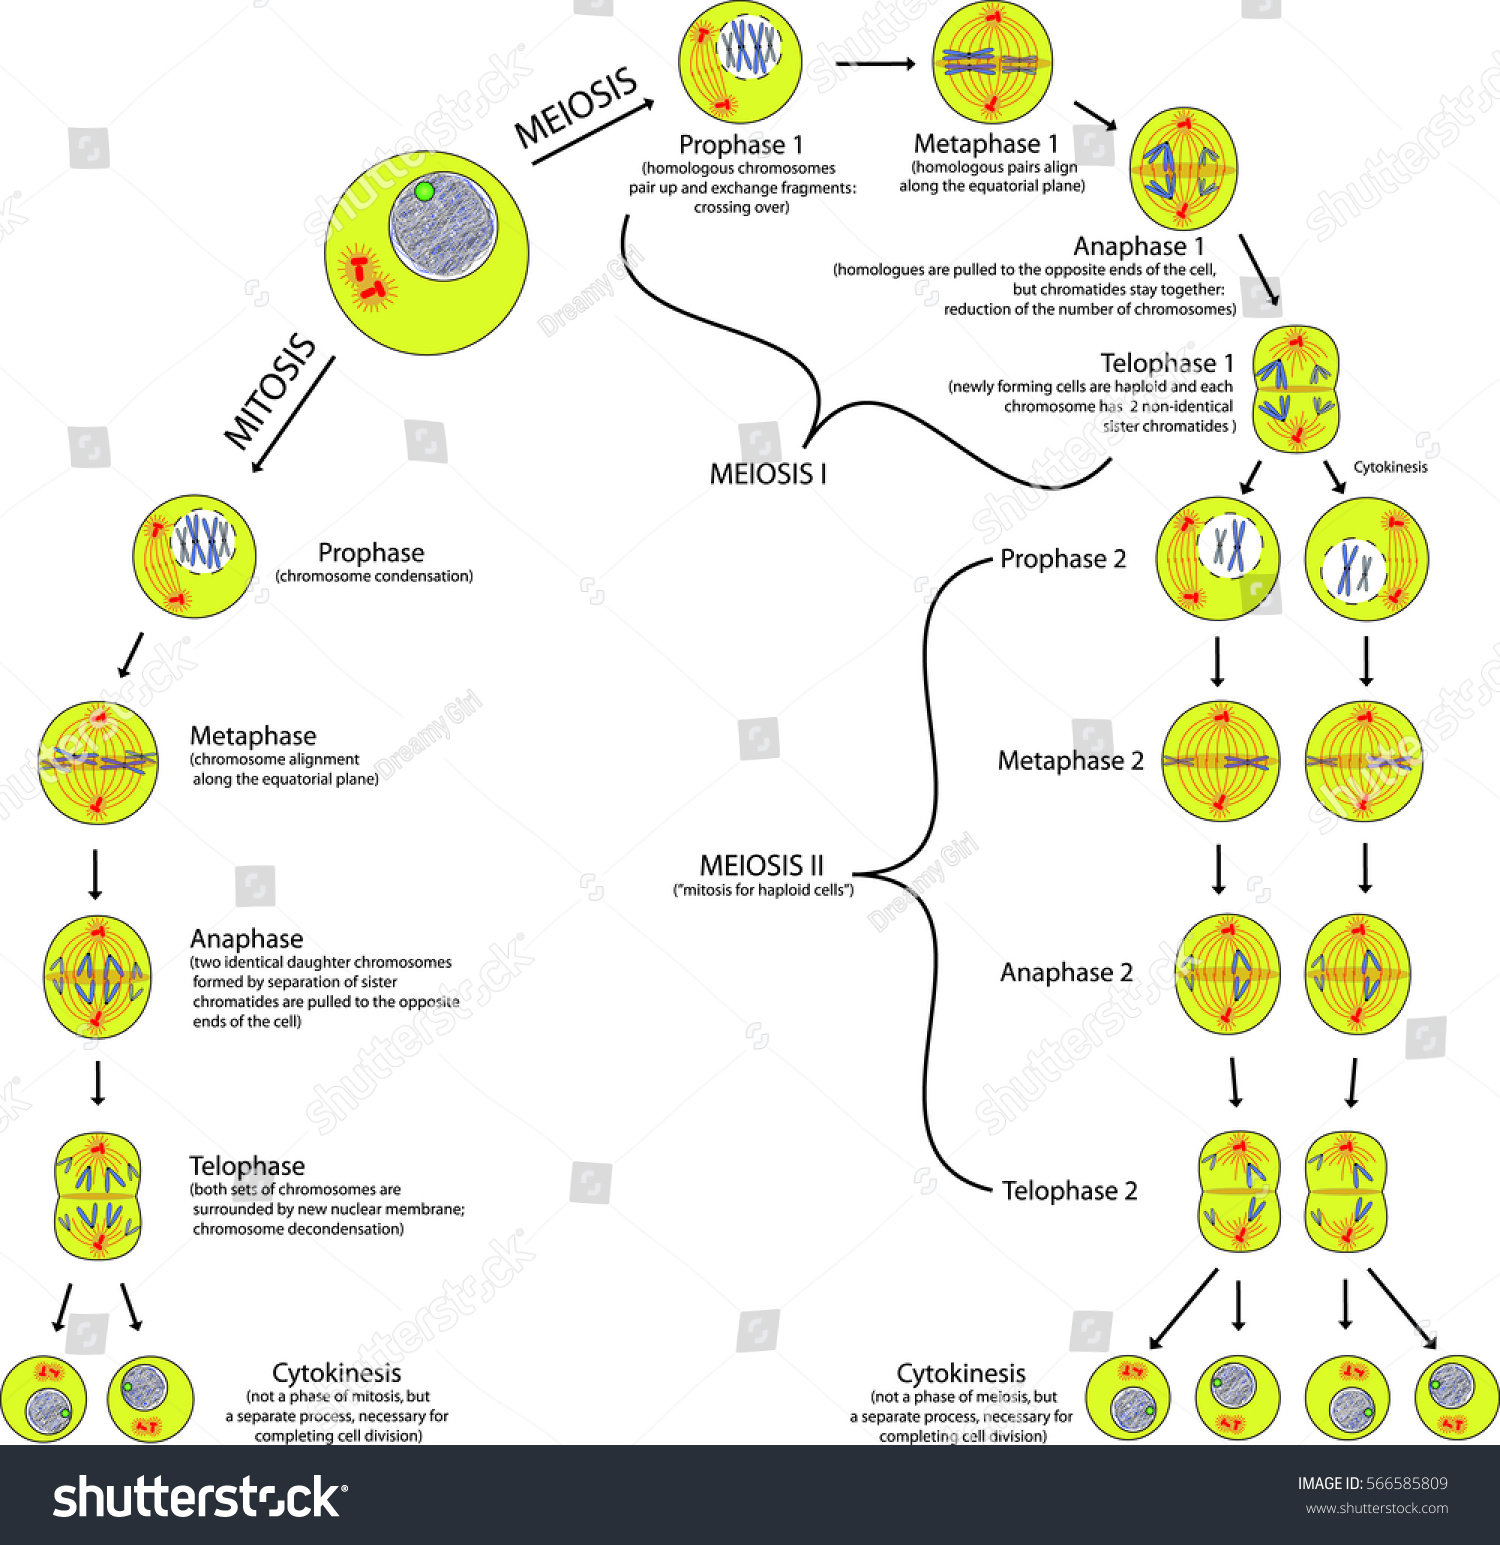 Mitosis meiosis comparison phases scheme explanation stock vector mitosis and meiosis comparison of phases scheme with explanation pooptronica Gallery